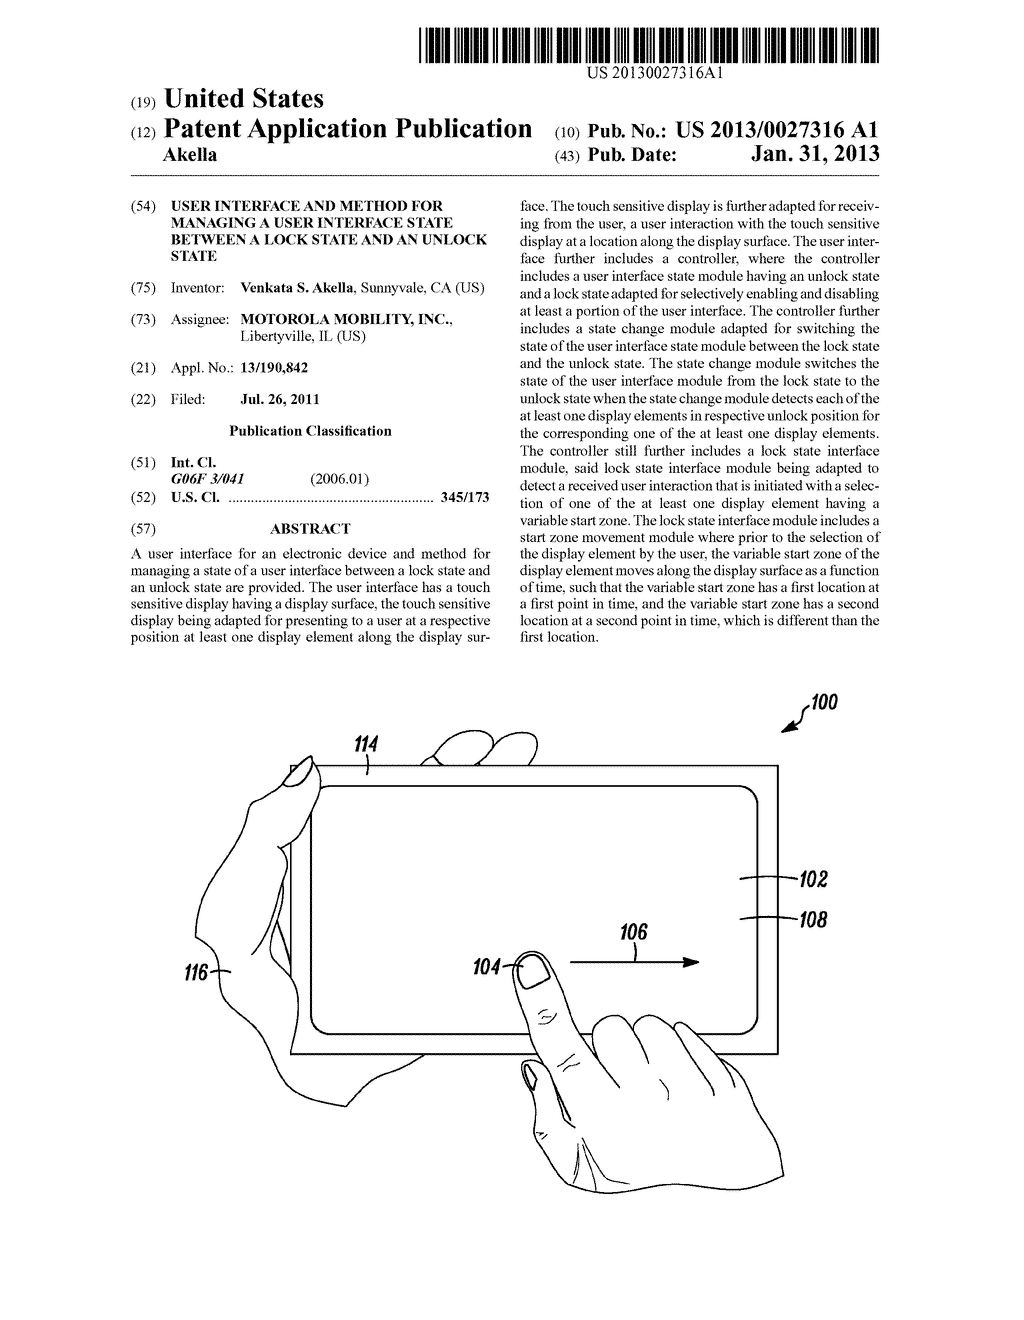 USER INTERFACE AND METHOD FOR MANAGING A USER INTERFACE STATE BETWEEN A     LOCK STATE AND AN UNLOCK STATE - diagram, schematic, and image 01